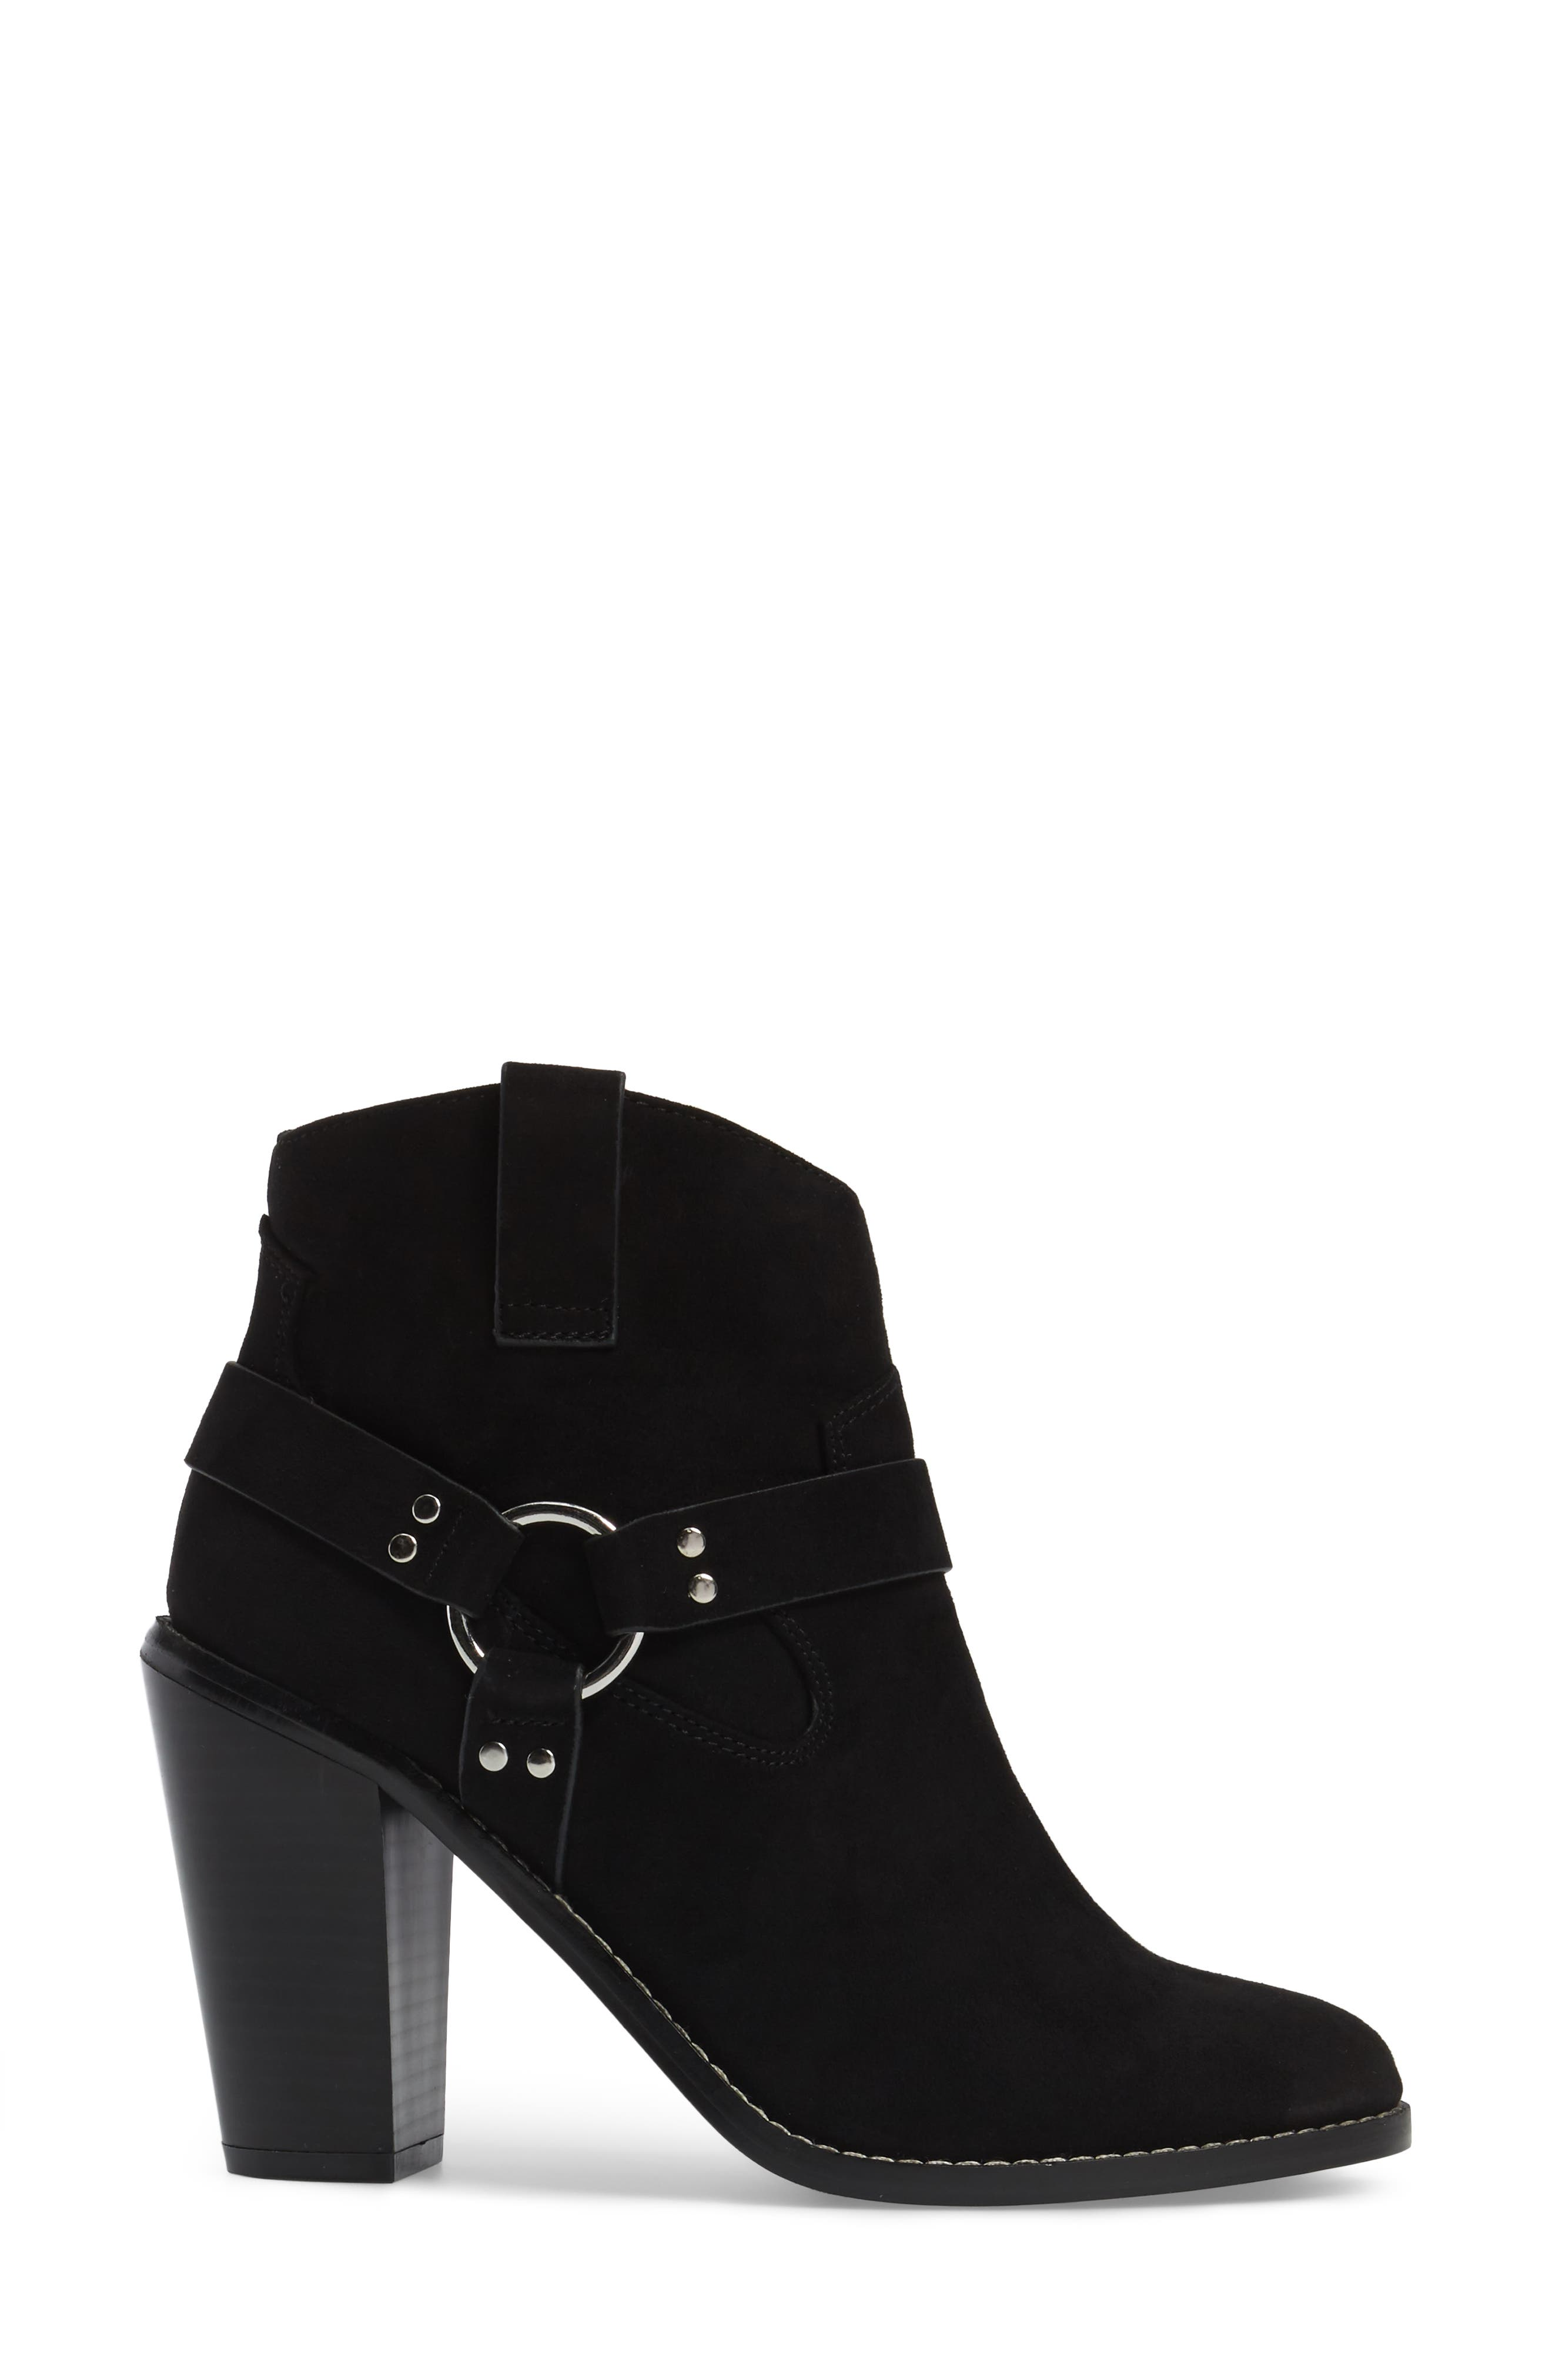 Fancye Ringed Ankle Strap Bootie,                             Alternate thumbnail 3, color,                             Black Synthetic